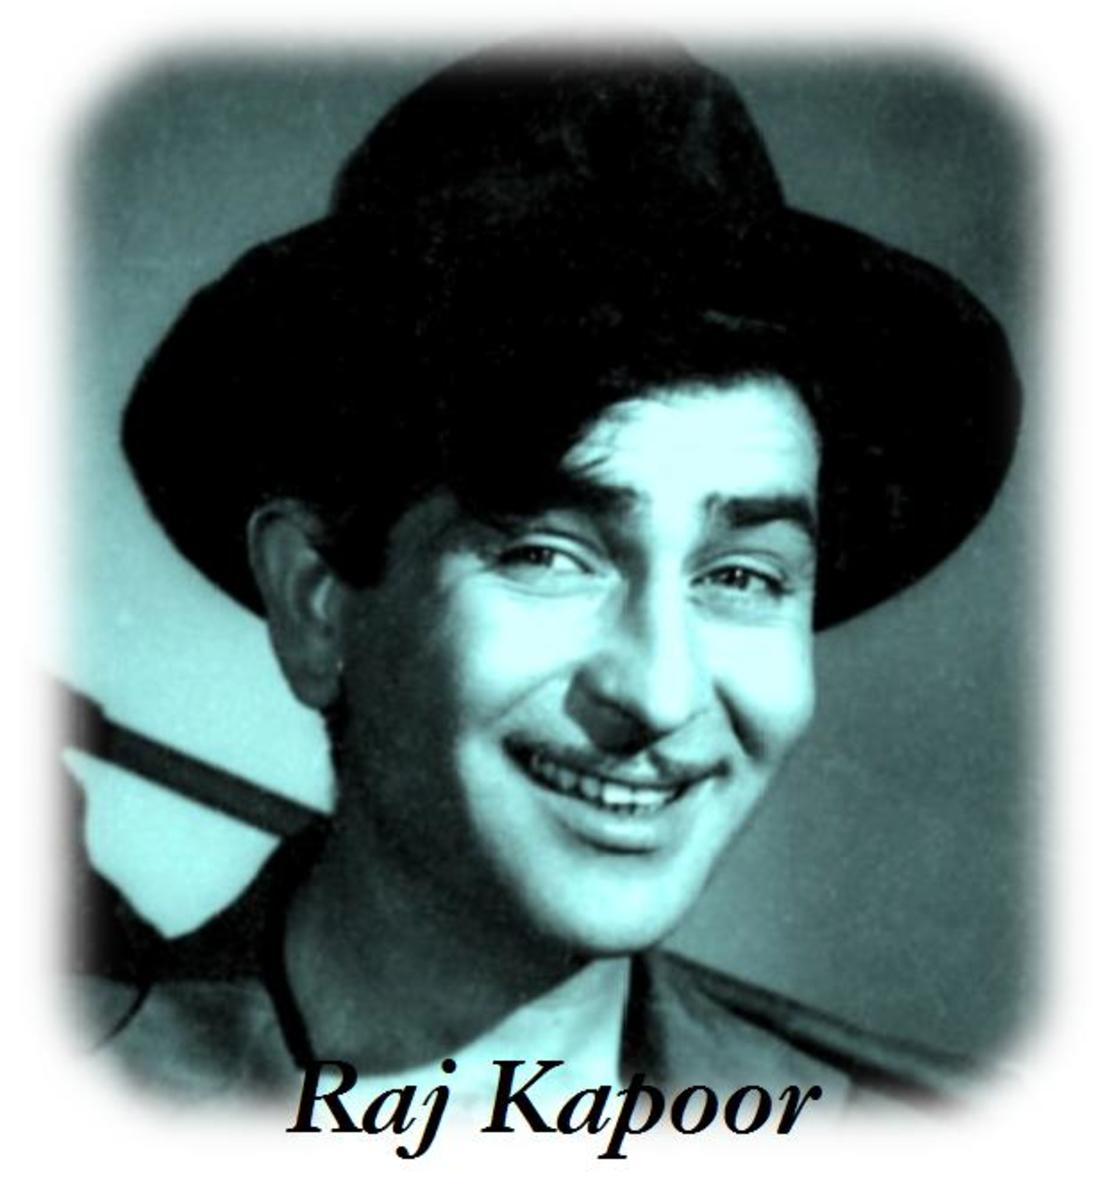 Raj Kapoor - His was always ahead of his time and showed the way for future. Also lead in showcasing Bollywood to the Box Office.